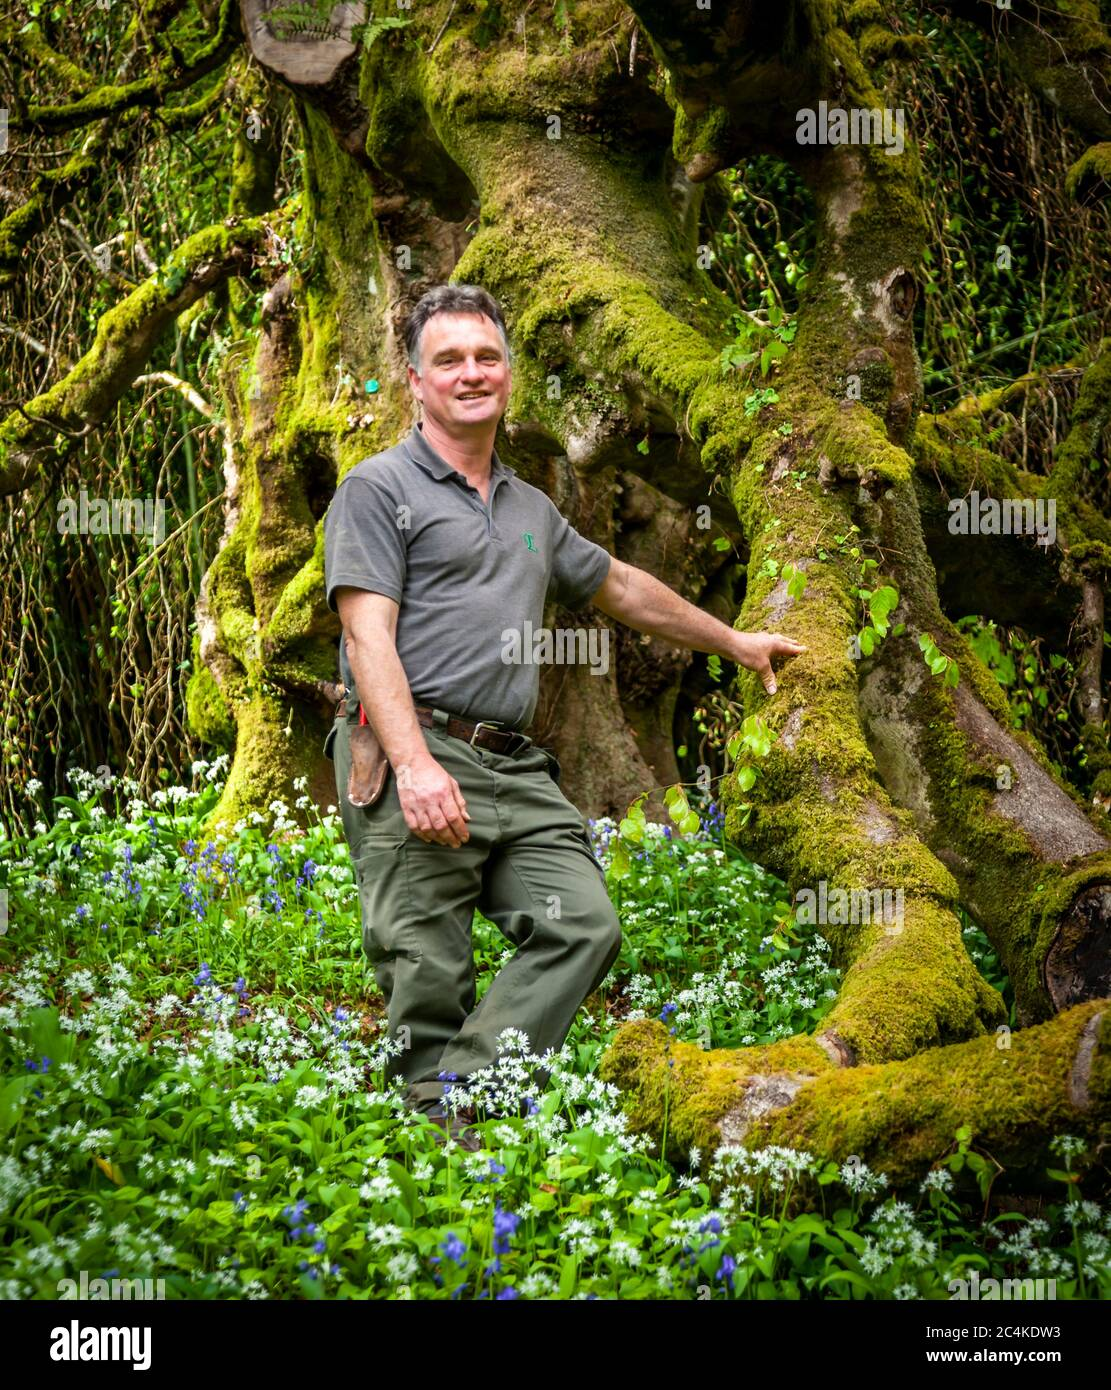 Endsleigh Hotel in West Devon, England. Head gardener Ben Roscombe-King at his favorite tree, a weeping birch that is over 200 years old. She has actually passed her maximum age and the gardeners have to support some of her huge branches Stock Photo